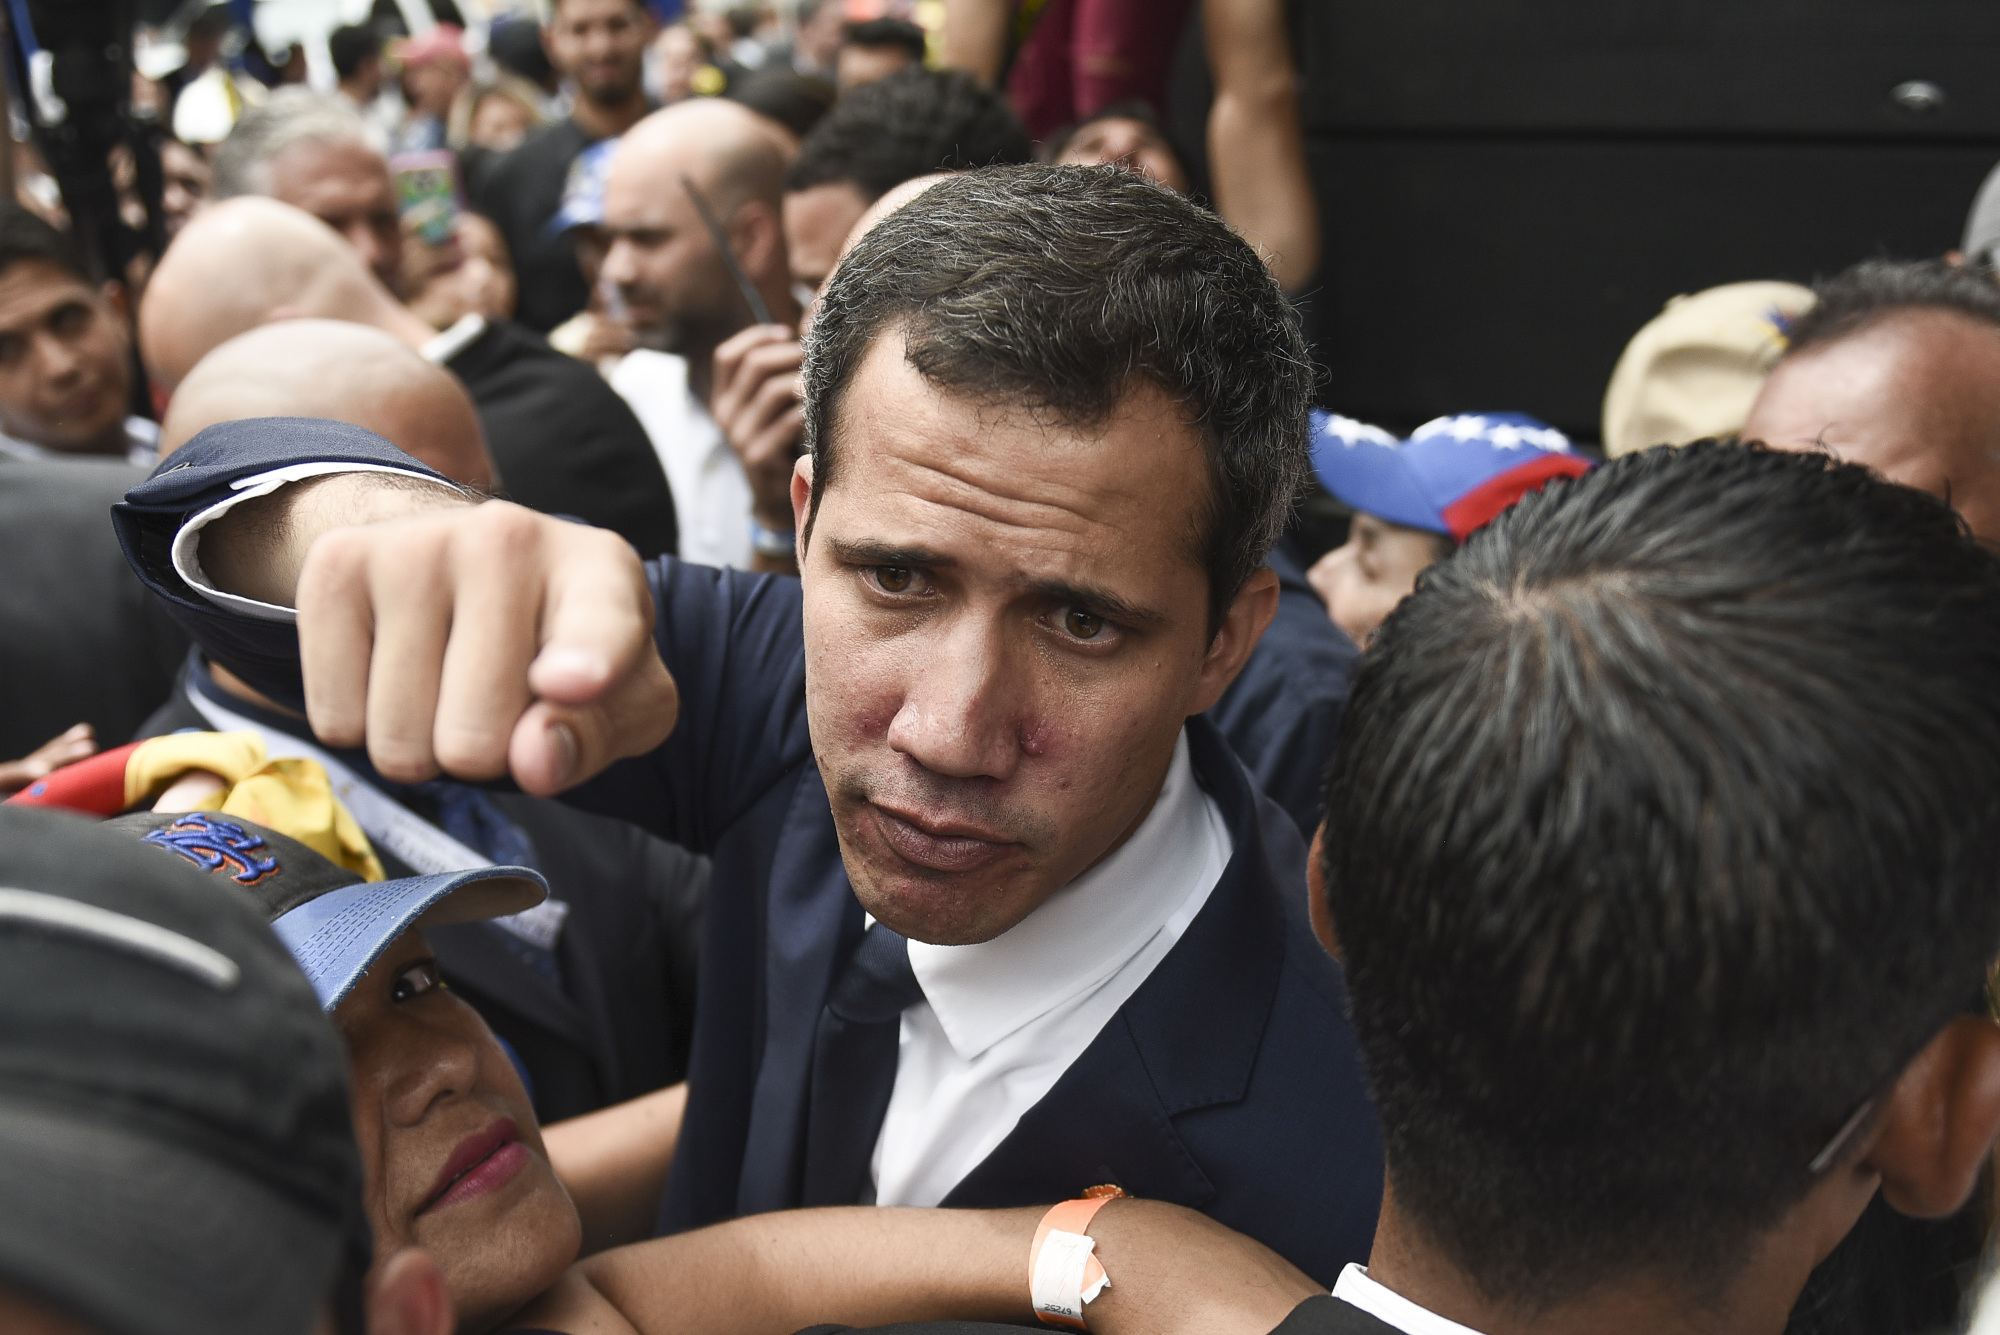 Juan Guaido, president of the National Assembly who swore himself in as the leader of Venezuela, gestures while leaving from a National Assembly session on rejoining the Inter-American Treaty of Reciprocal Assistance, known as the Rio Treaty, in the Las Mercedes neighborhood of Caracas on Tuesday. The agreement, known in Spanish as TIAR, allows for countries of the Hemisphere to request support in case of aggression.   BLOOMBERG